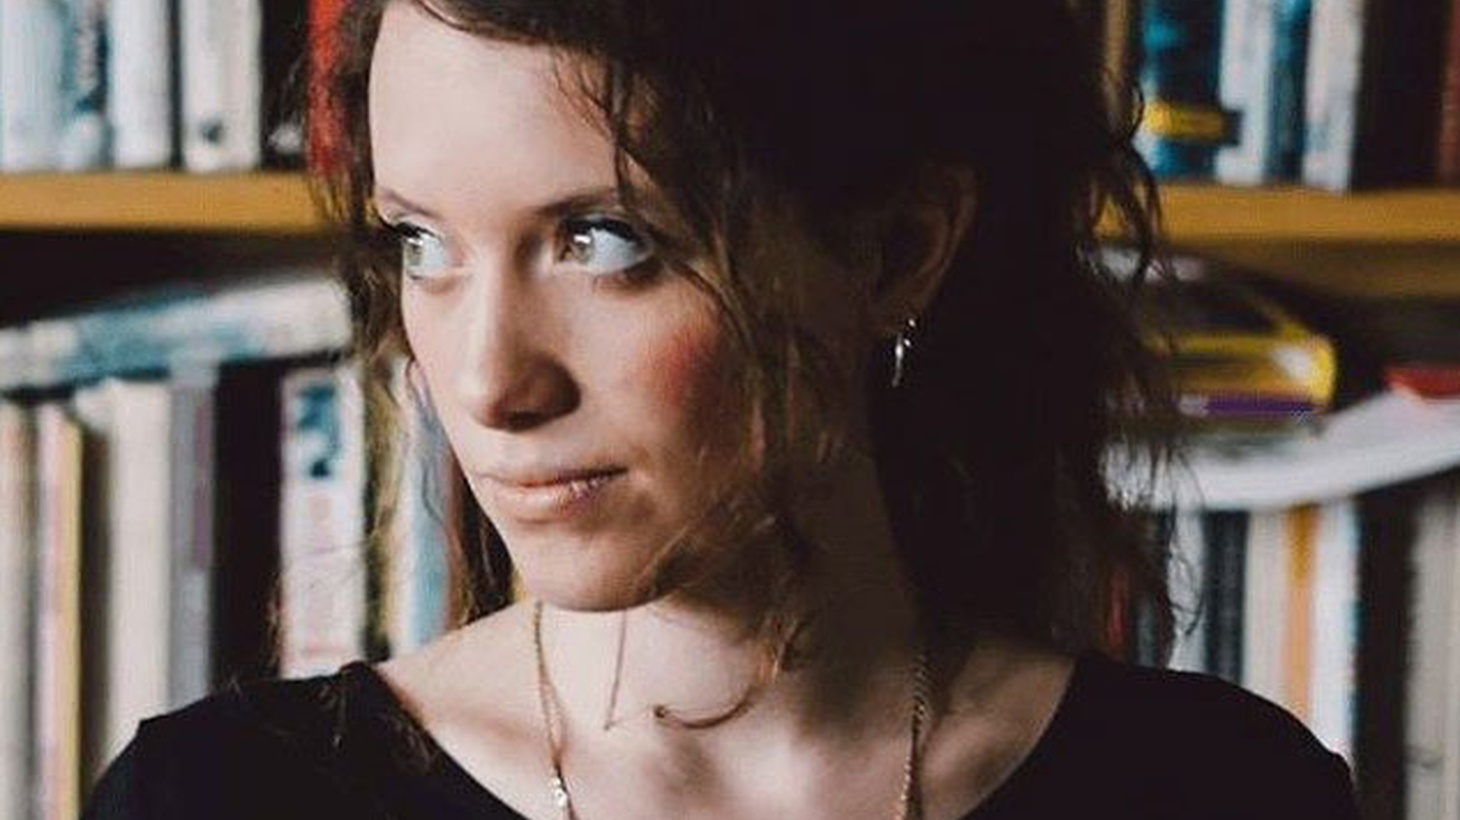 UK singer/songwriter Carmody found success in the last couple of years while collaborating on a project with Tom Misch.